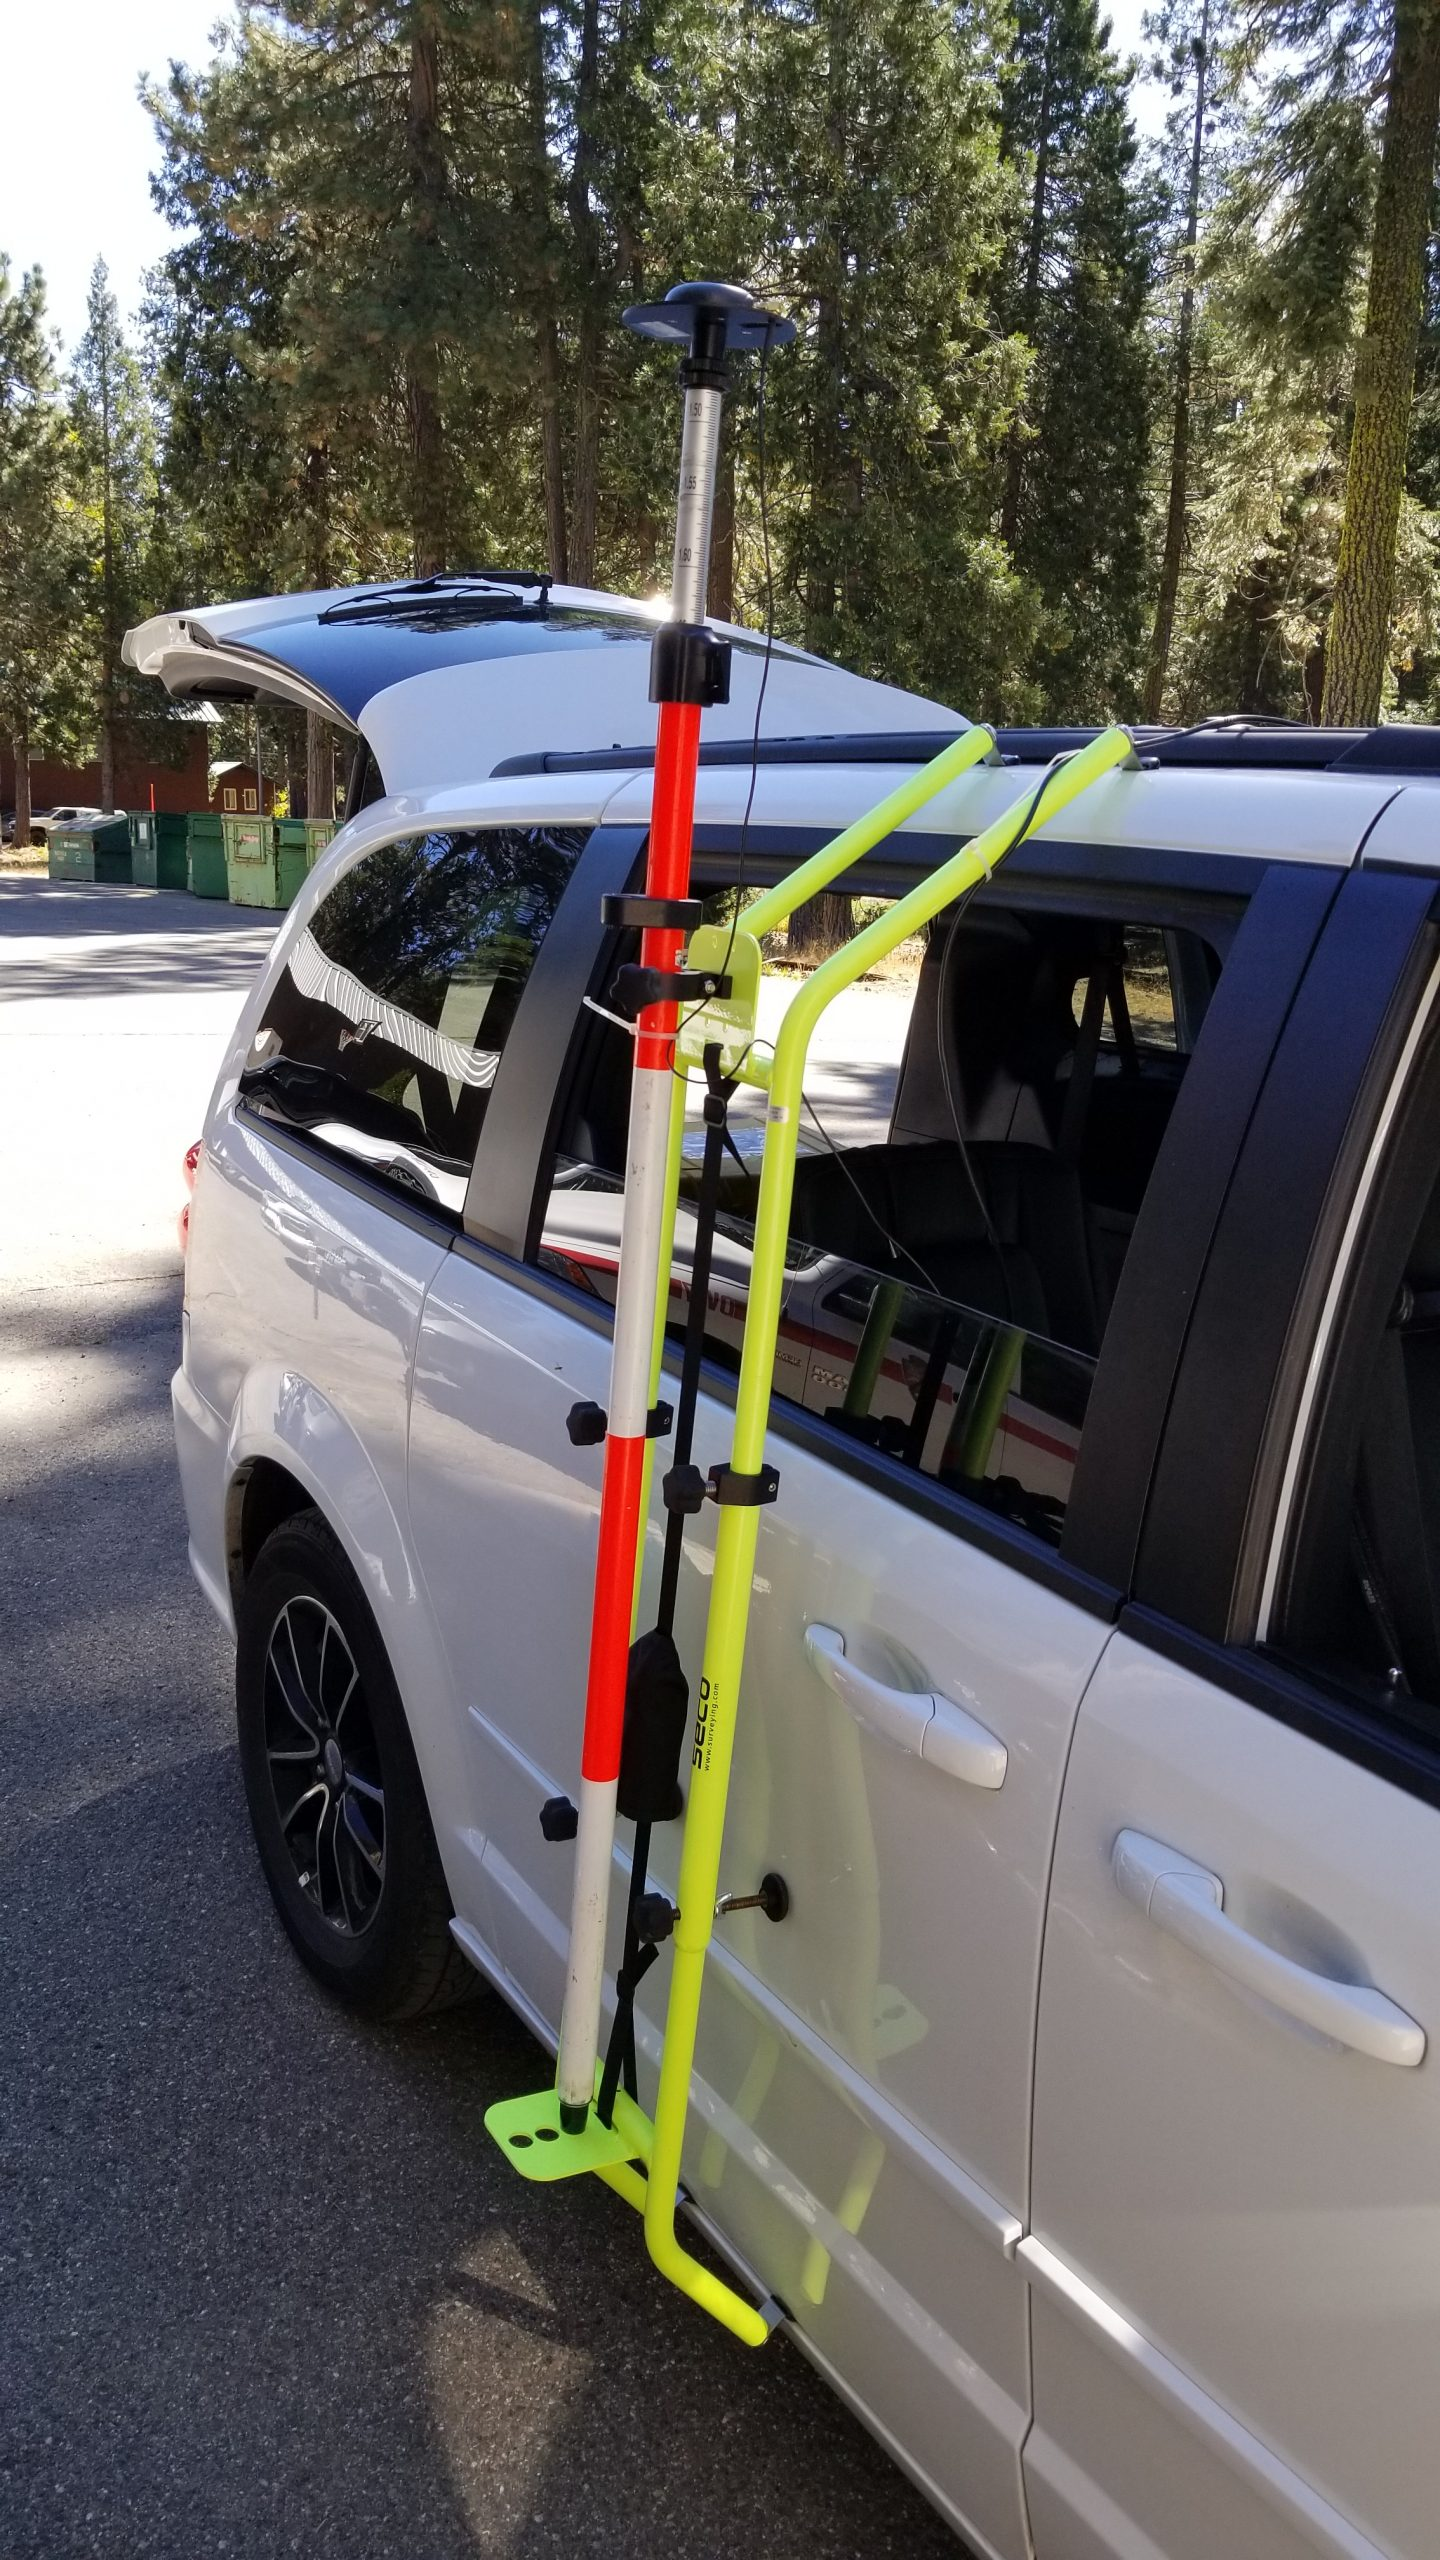 Arrow Gold GNSS antenna mounted to the side of a vehicle to map the road edges